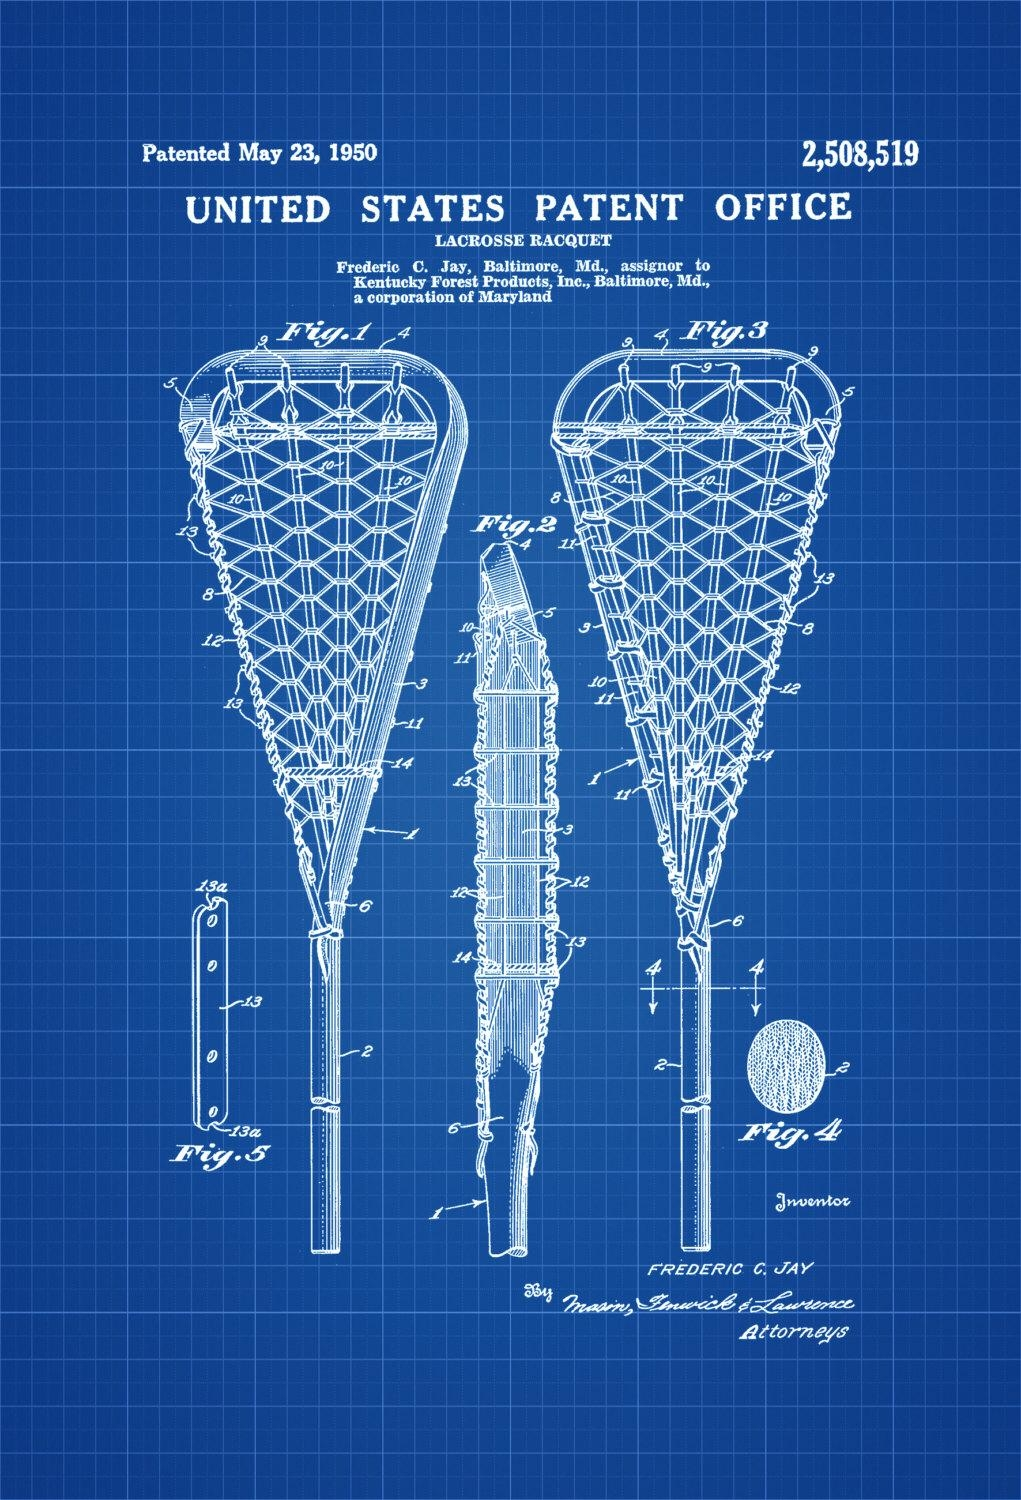 Lacrosse Racquet Patent – Patent Print, Wall Decor, Lacrosse Art For Lacrosse Wall Art (View 7 of 20)